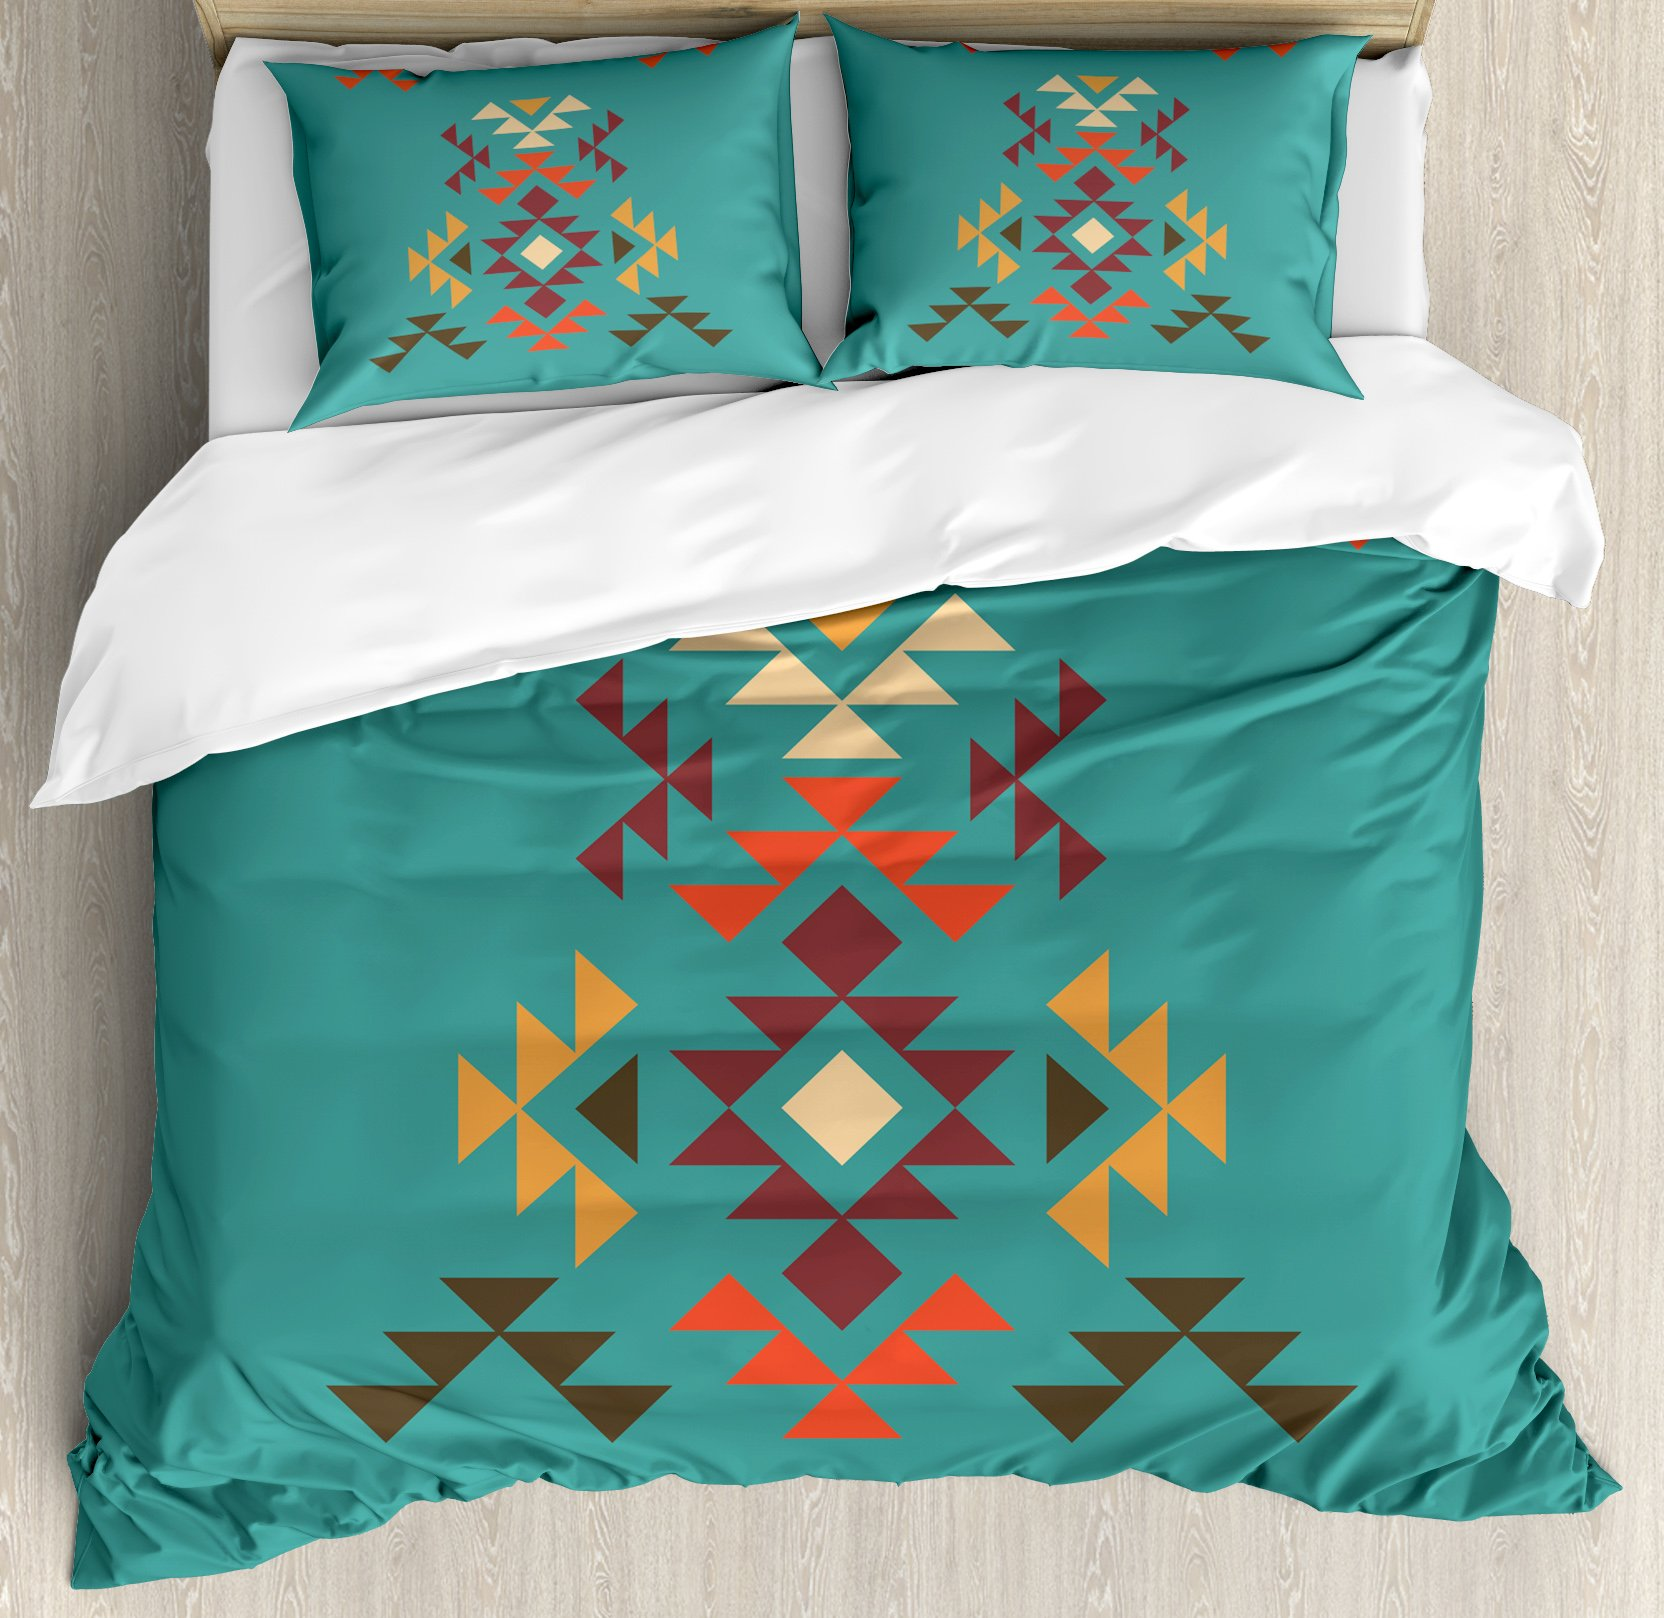 Lunarable Aztec Duvet Cover Set Queen Size, Colorful Geometric Shapes on Teal Backdrop Cheerful Tribal Design Ethnic Culture, Decorative 3 Piece Bedding Set with 2 Pillow Shams, Teal Multicolor by Lunarable